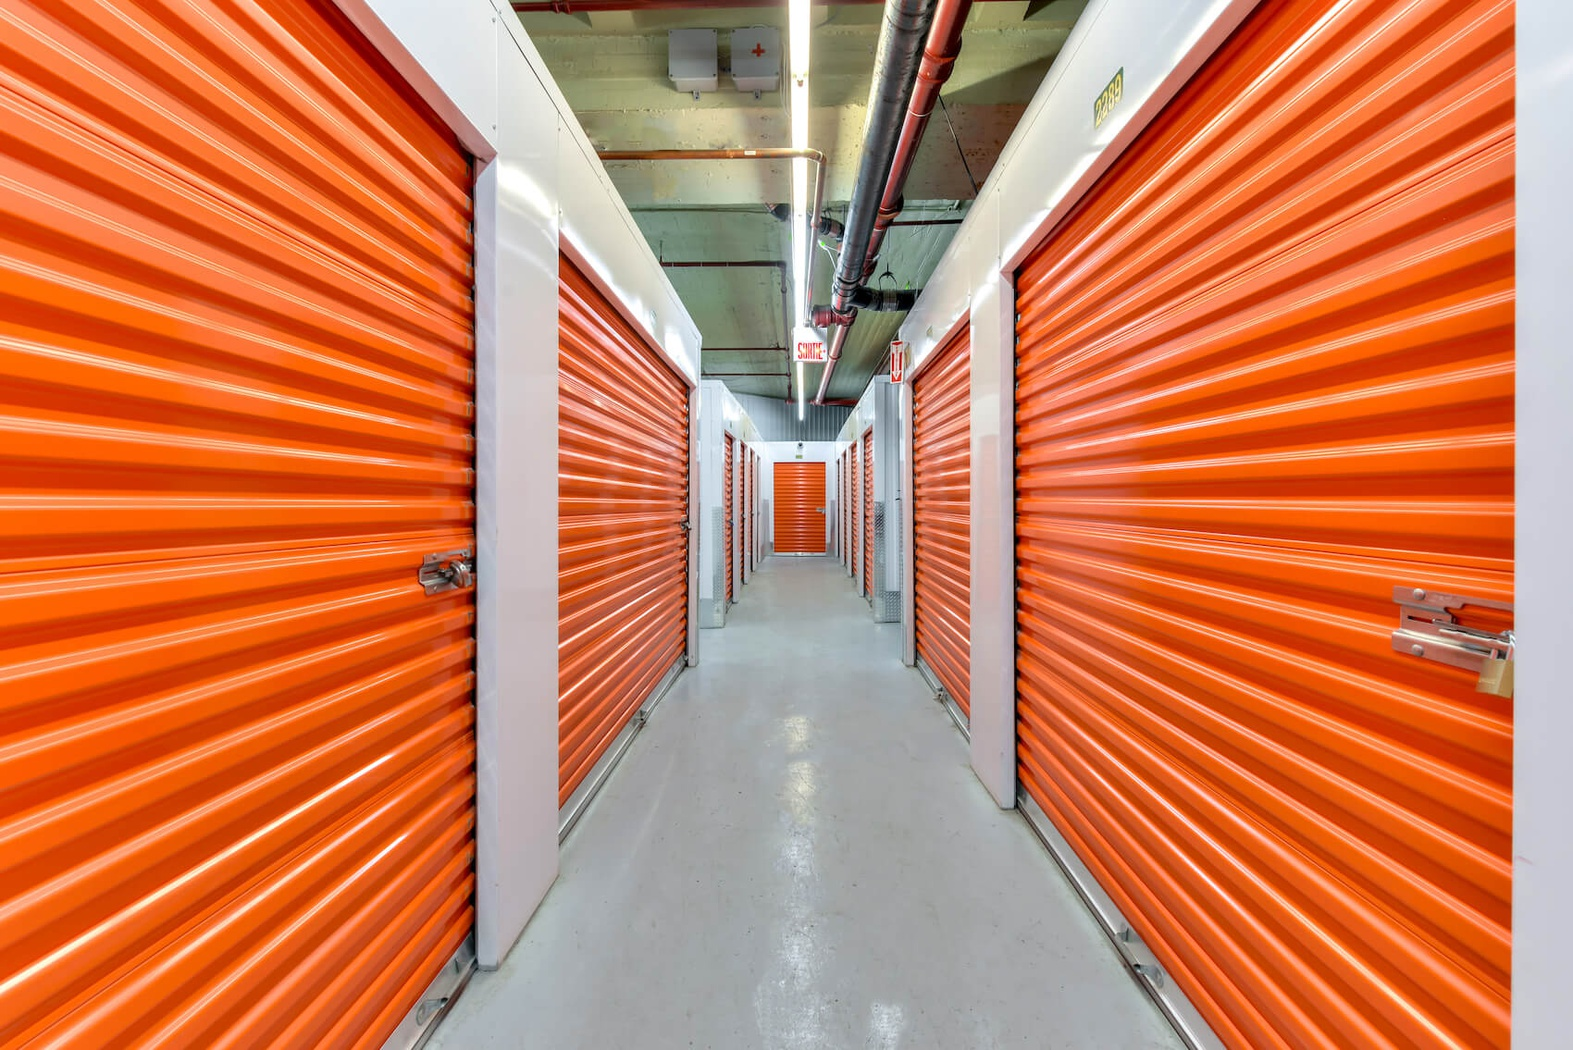 Rent Montreal storage units at 889 Notre-Dame Street West. We offer a wide-range of affordable self storage units and your first 4 weeks are free!